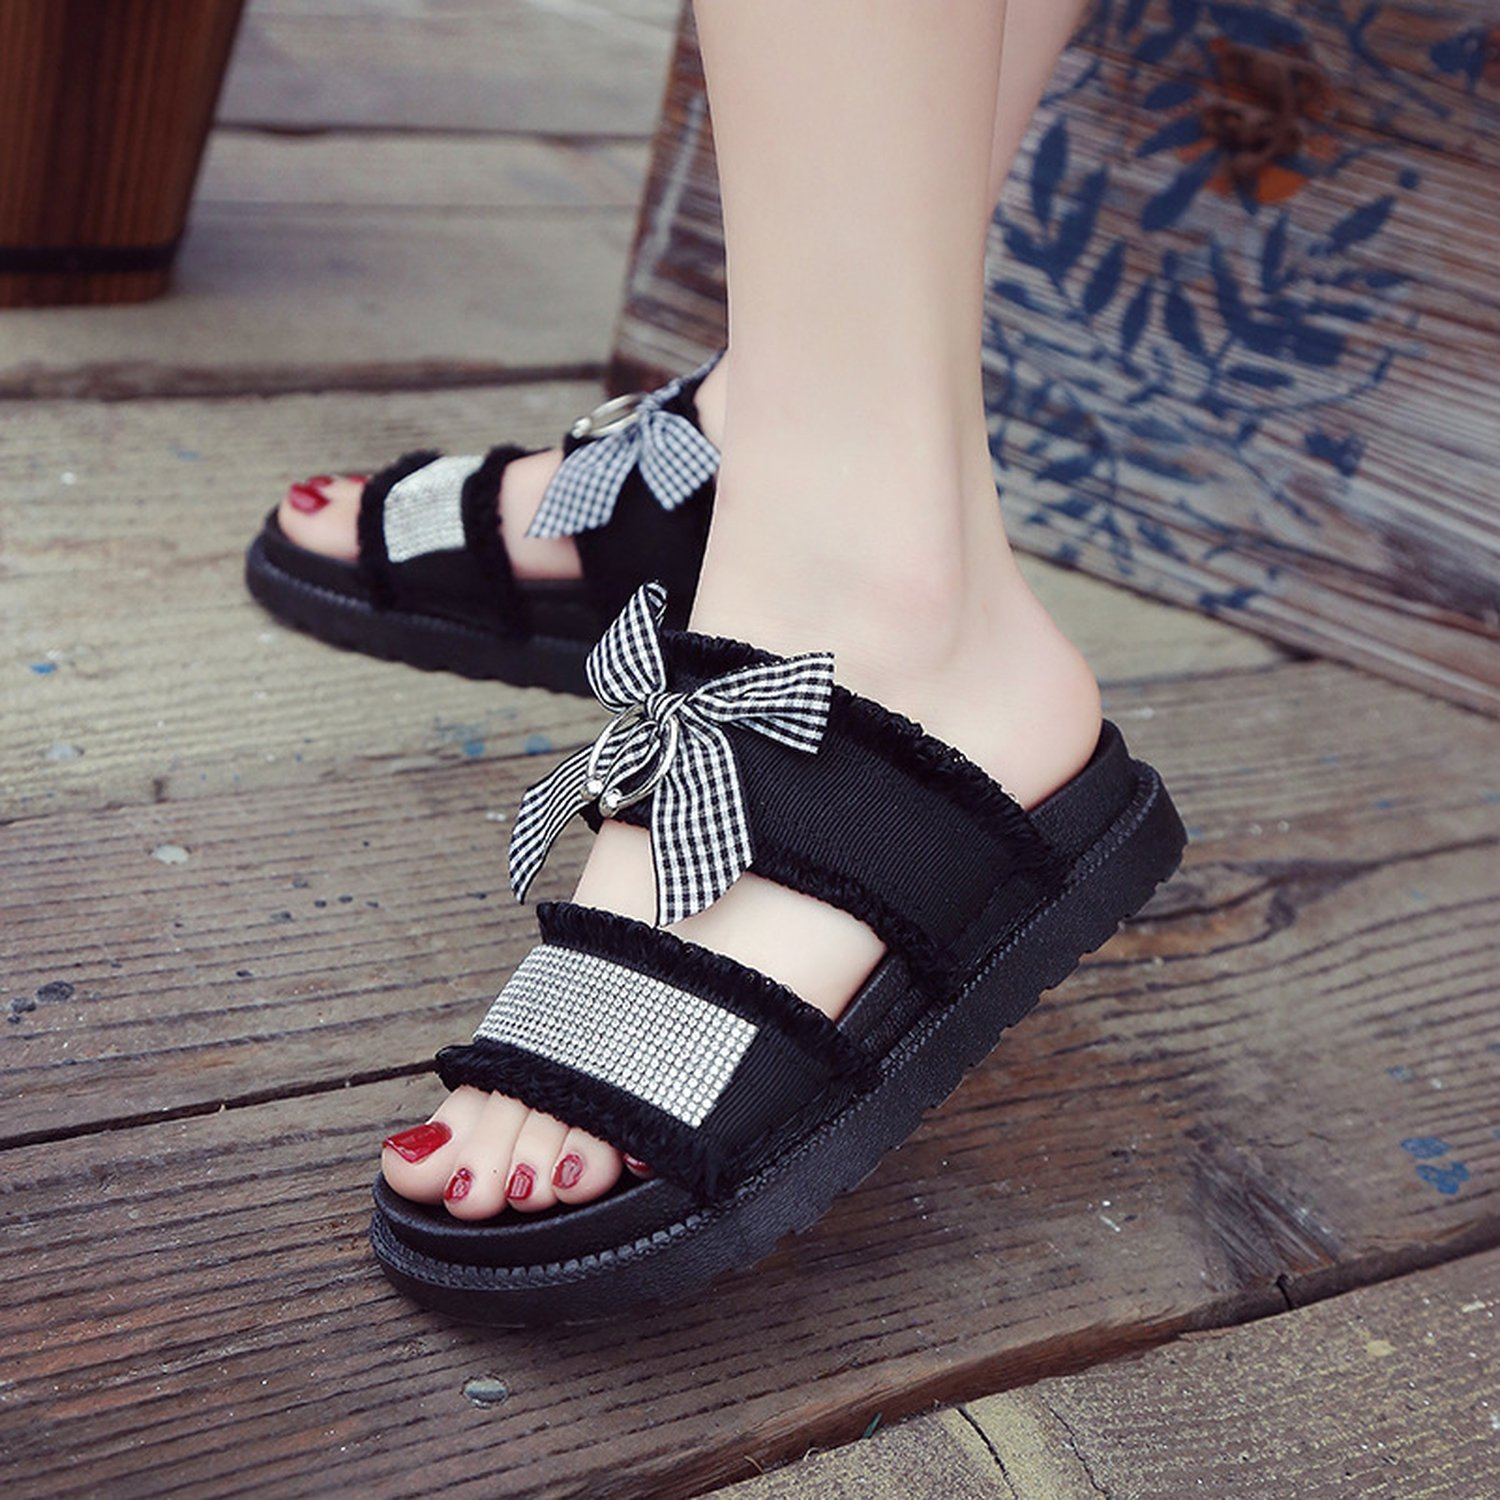 Good-memories Thick-Soled Sandals Summer 2018 Korean Fashion Bow Diamond Casual Rome Chic Fairy Shoes,White,35